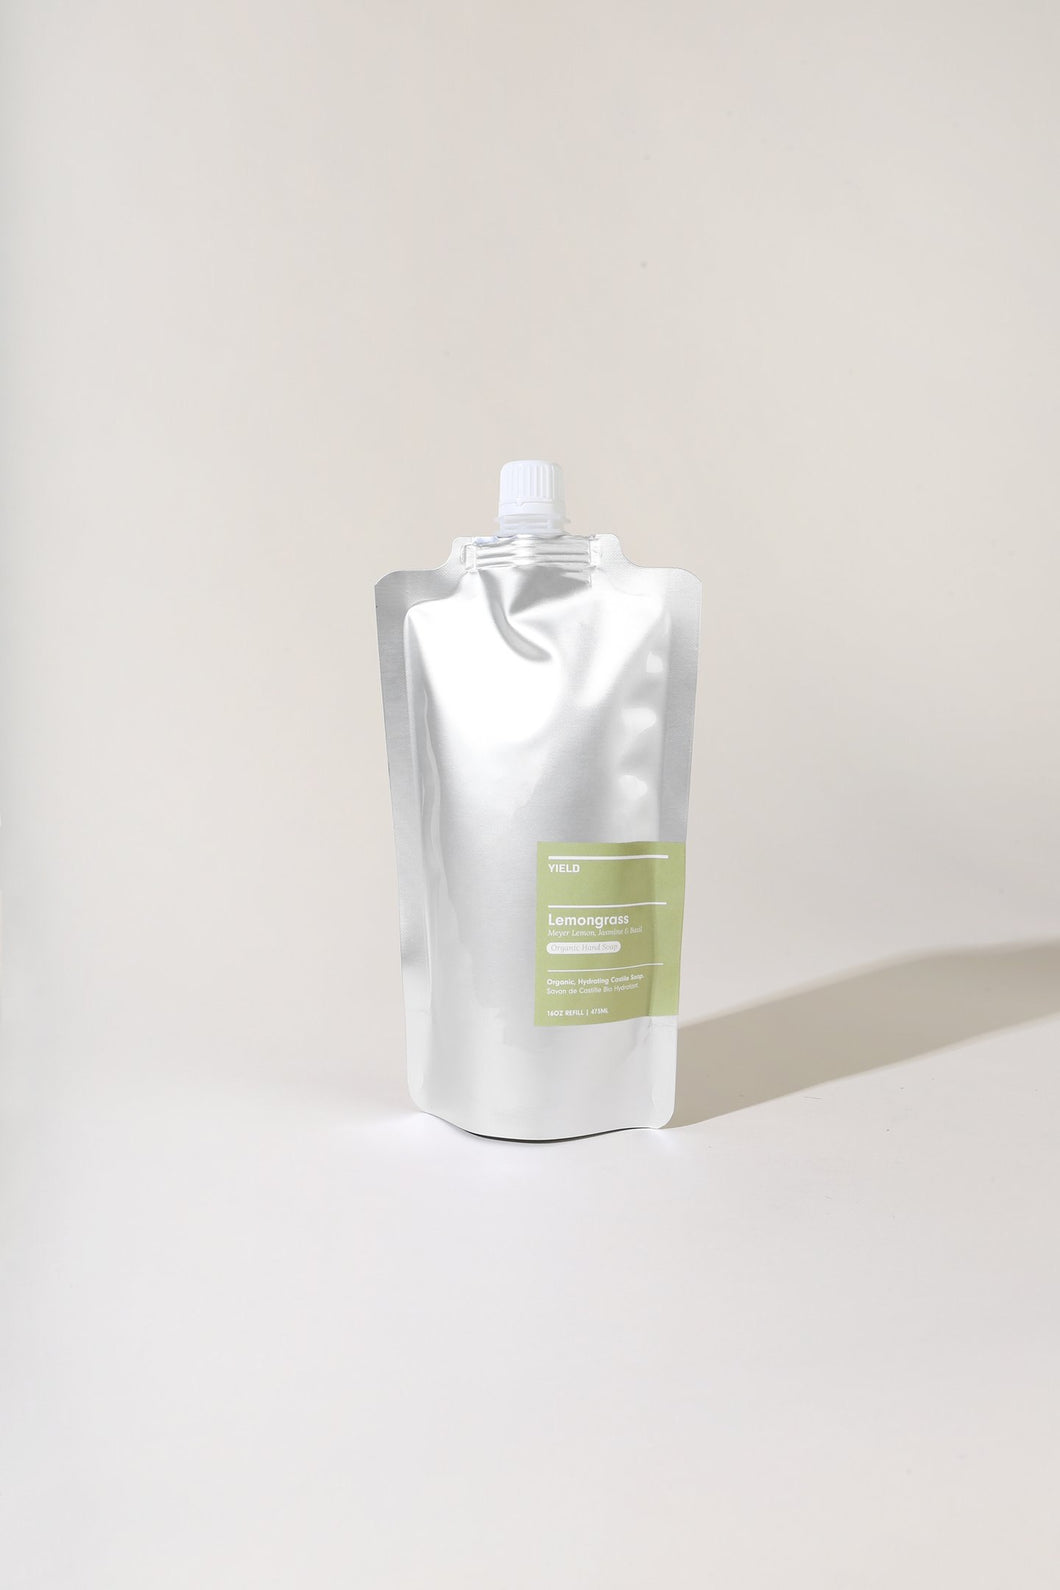 YIELD Organic Hand Soap Refill Pouch